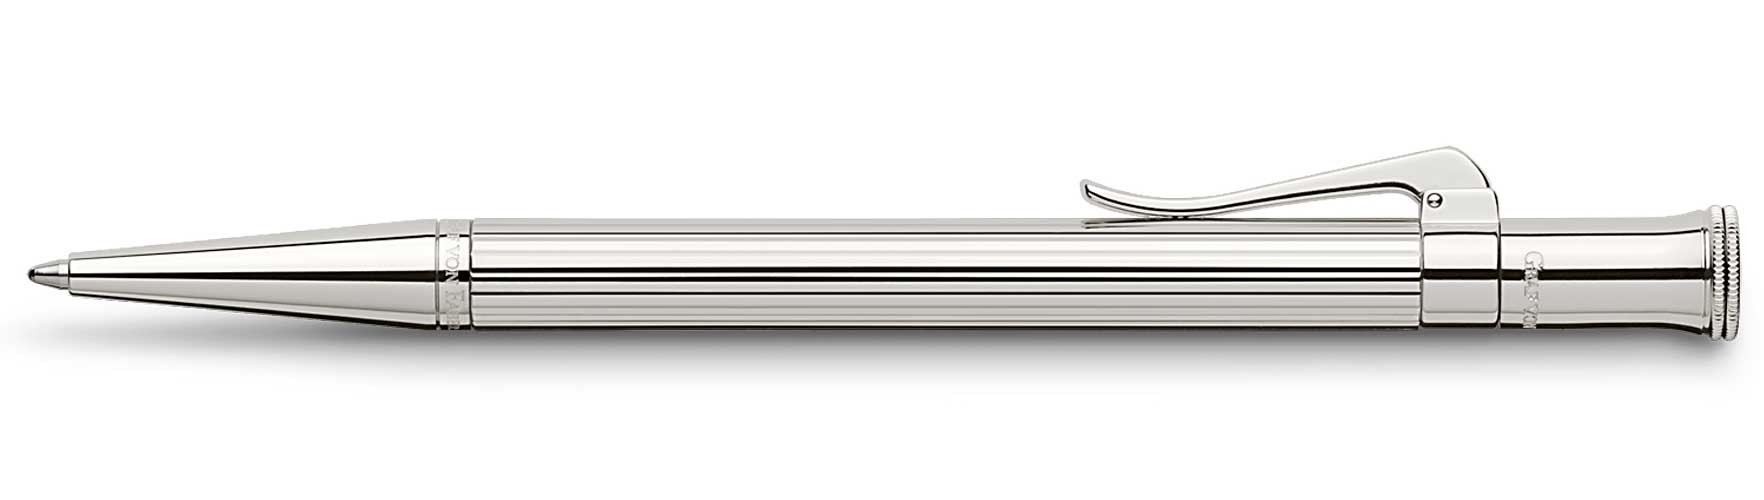 Шариковая ручка Faber-Castell Classic Sterling Silver